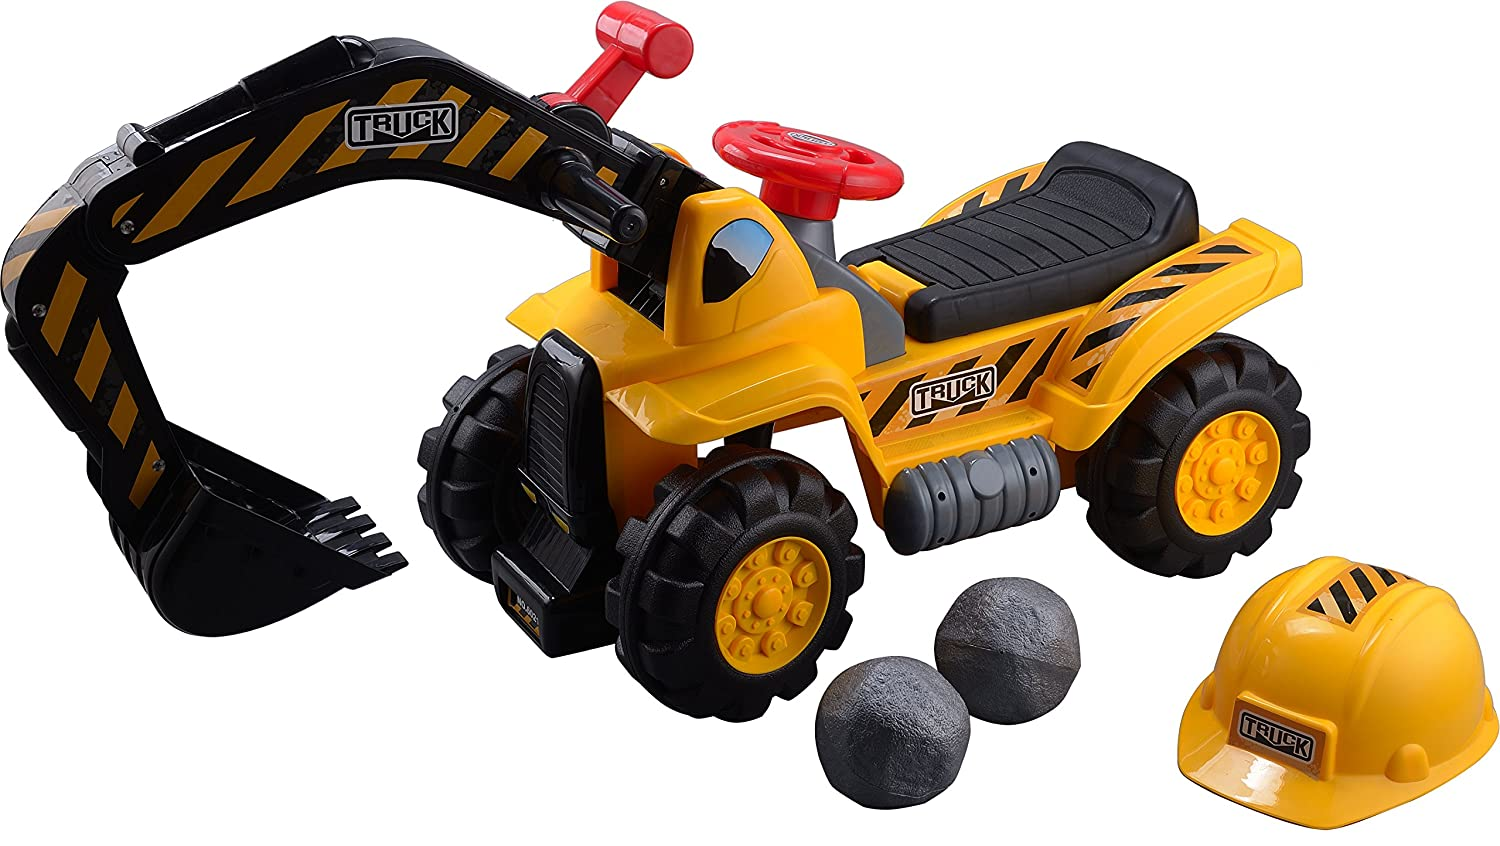 bea6ad481a2fb Play22 Toy Tractors for Kids Ride On Excavator - Music Sounds Digger  Scooter Tractor Toys Bulldozer Includes Helmet with Rocks - Ride On Tractor  Pretend ...